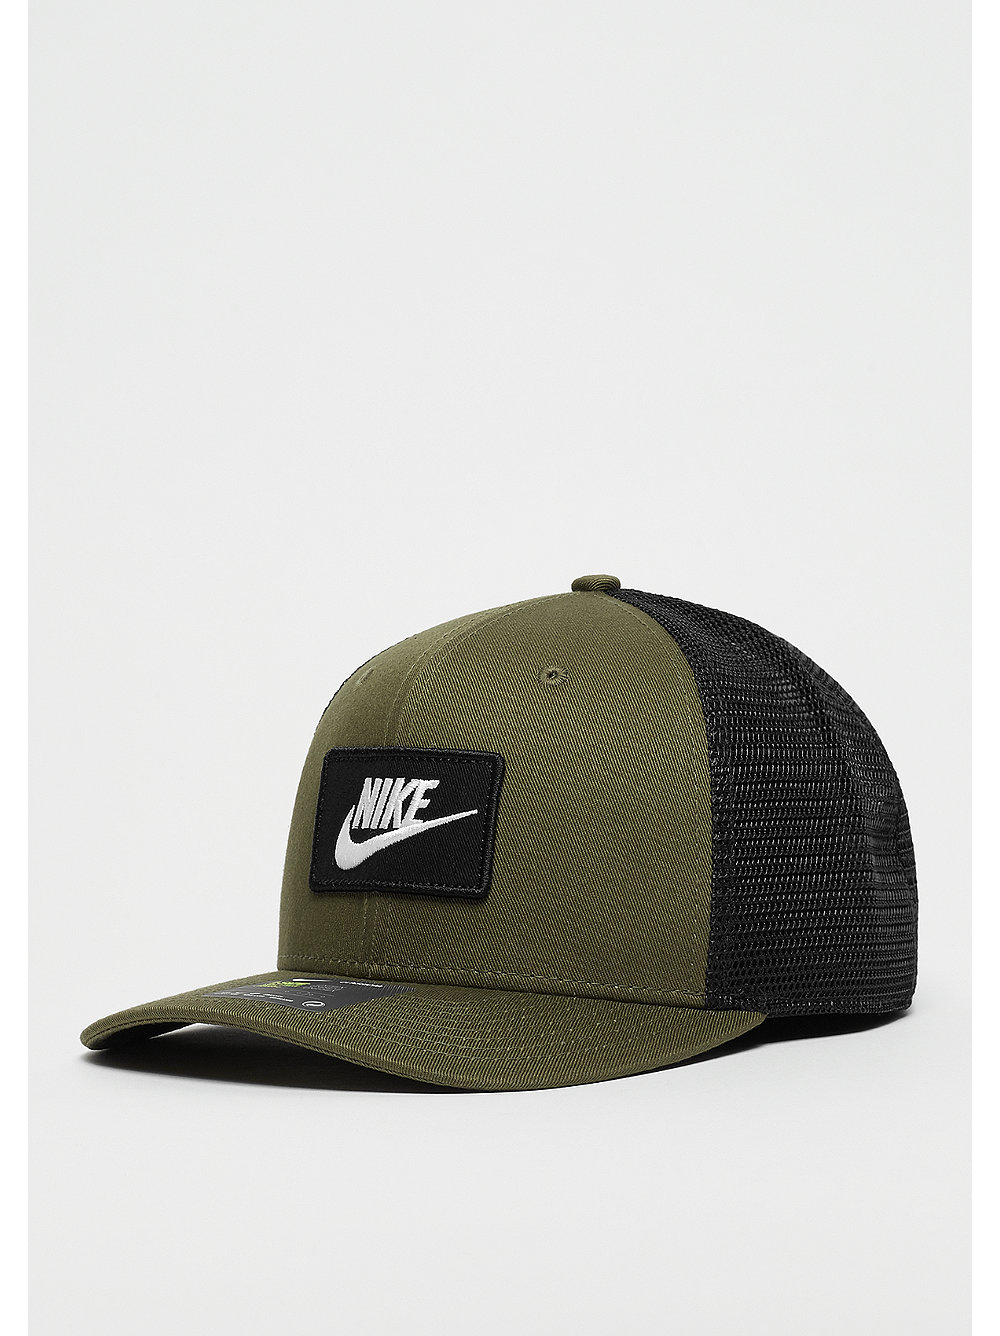 NIKE NSW CLC99 Cap Trucker olive canvas/black